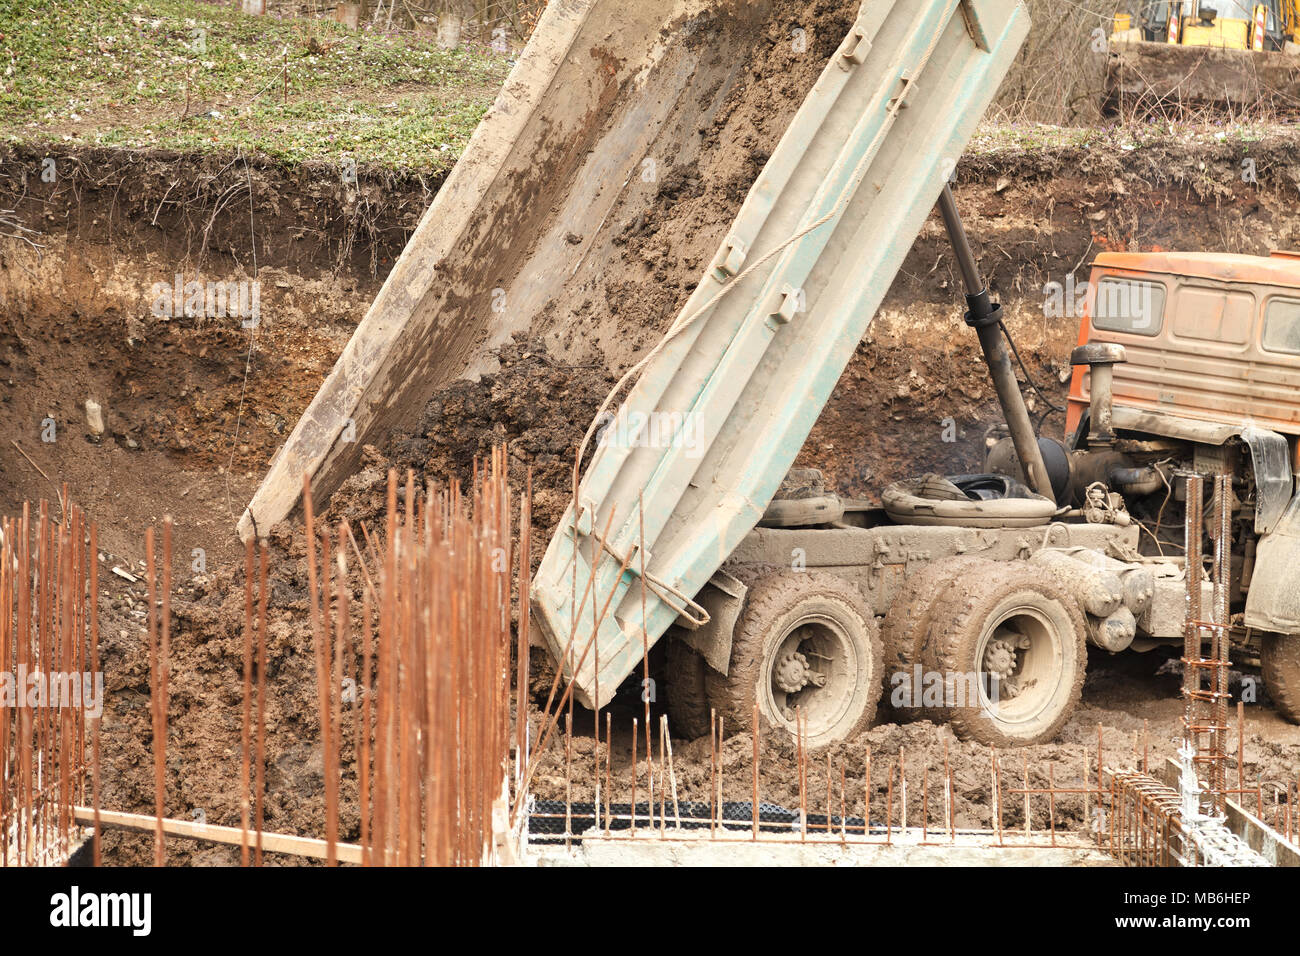 A large truck unloads clay and earth on the construction of a large house - Stock Image